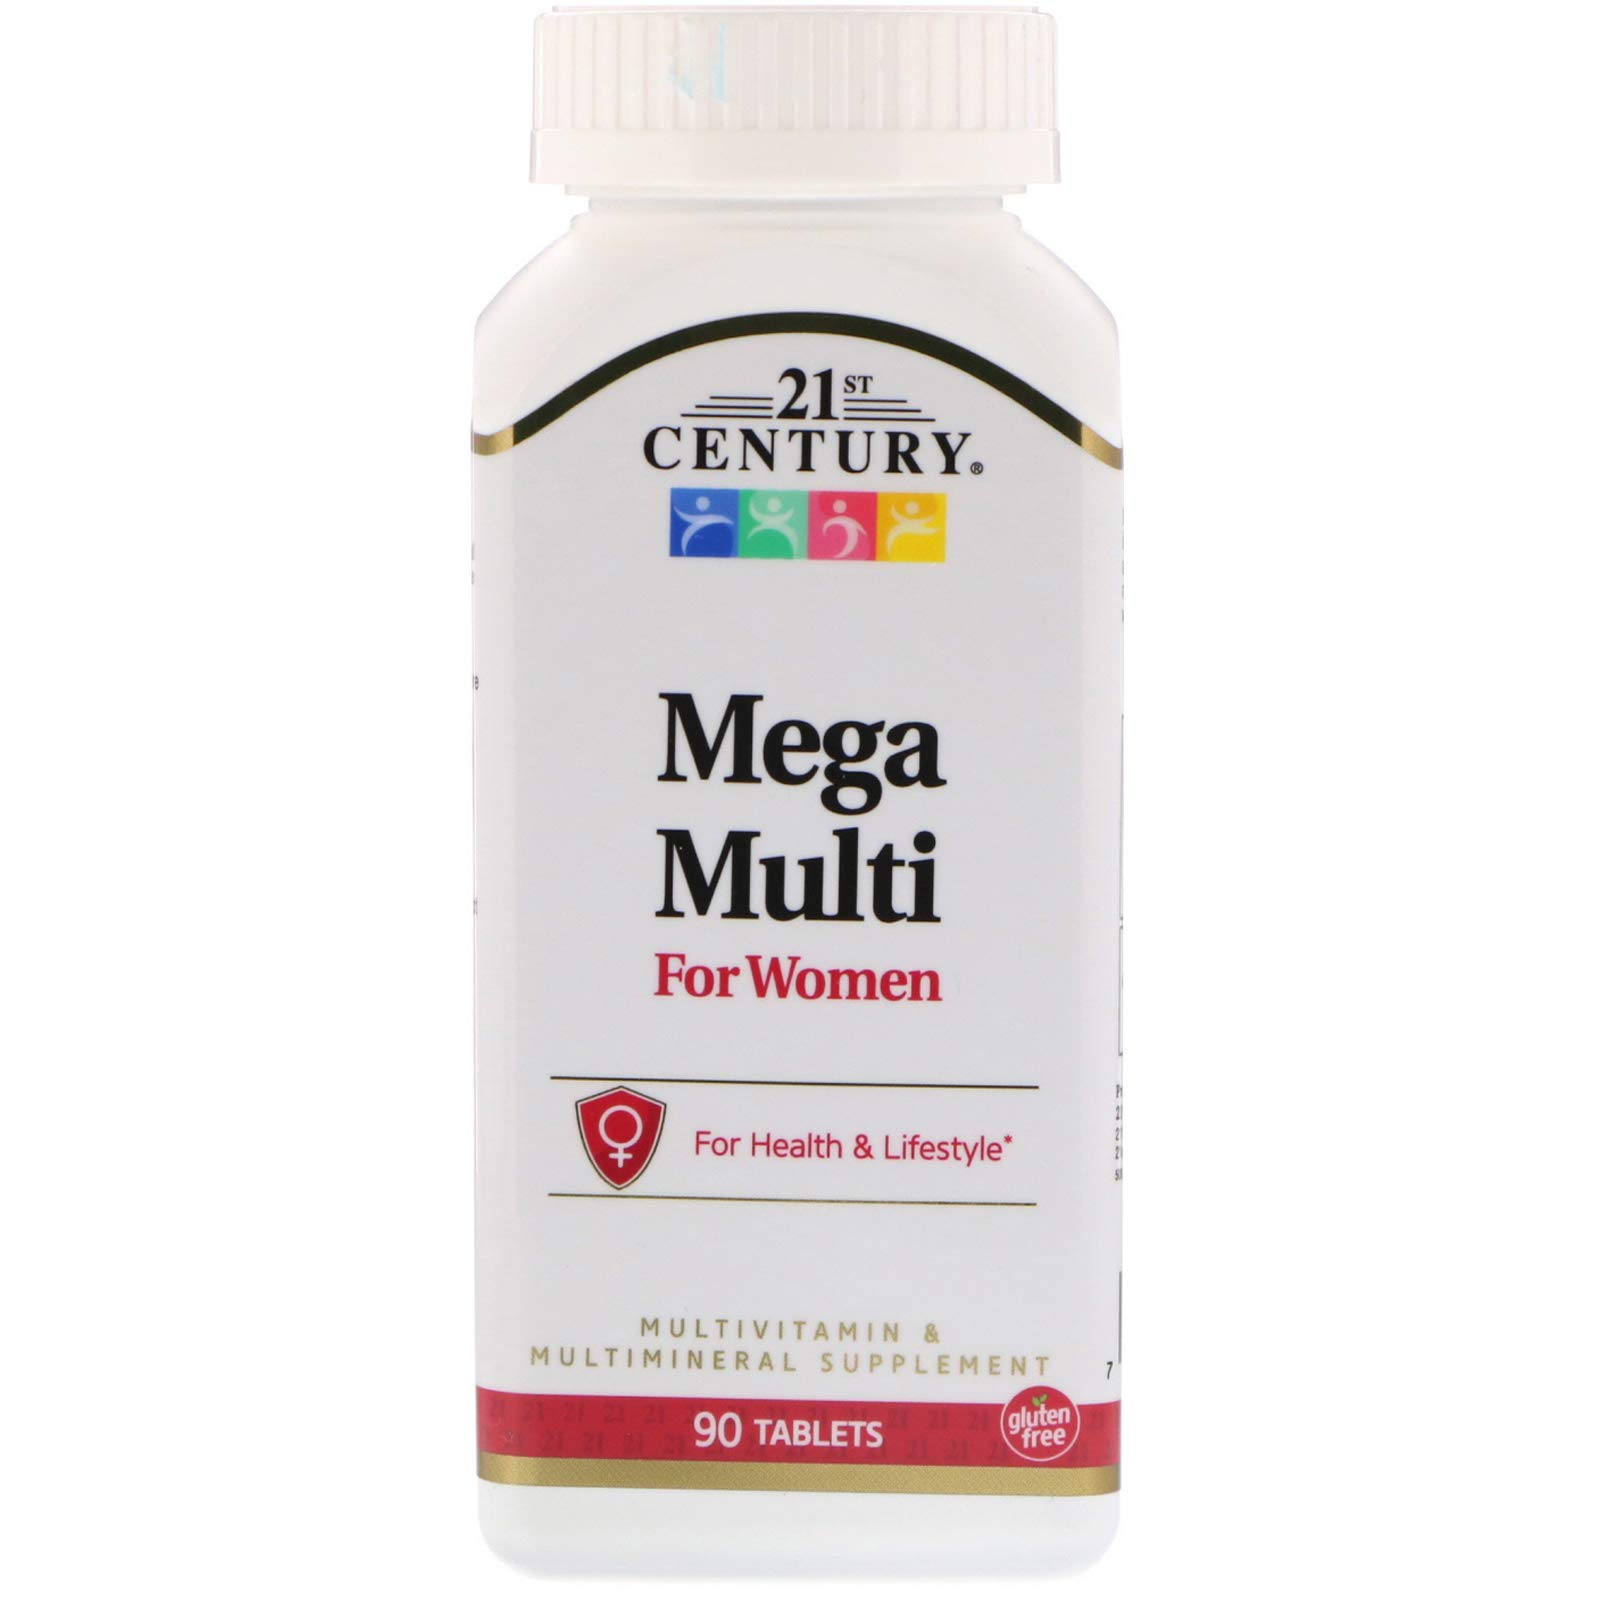 21st Century, Mega Multi, for Women, Multivitamin & Multimineral, 90 Tablets by 21st Century Vitamins (Image #1)